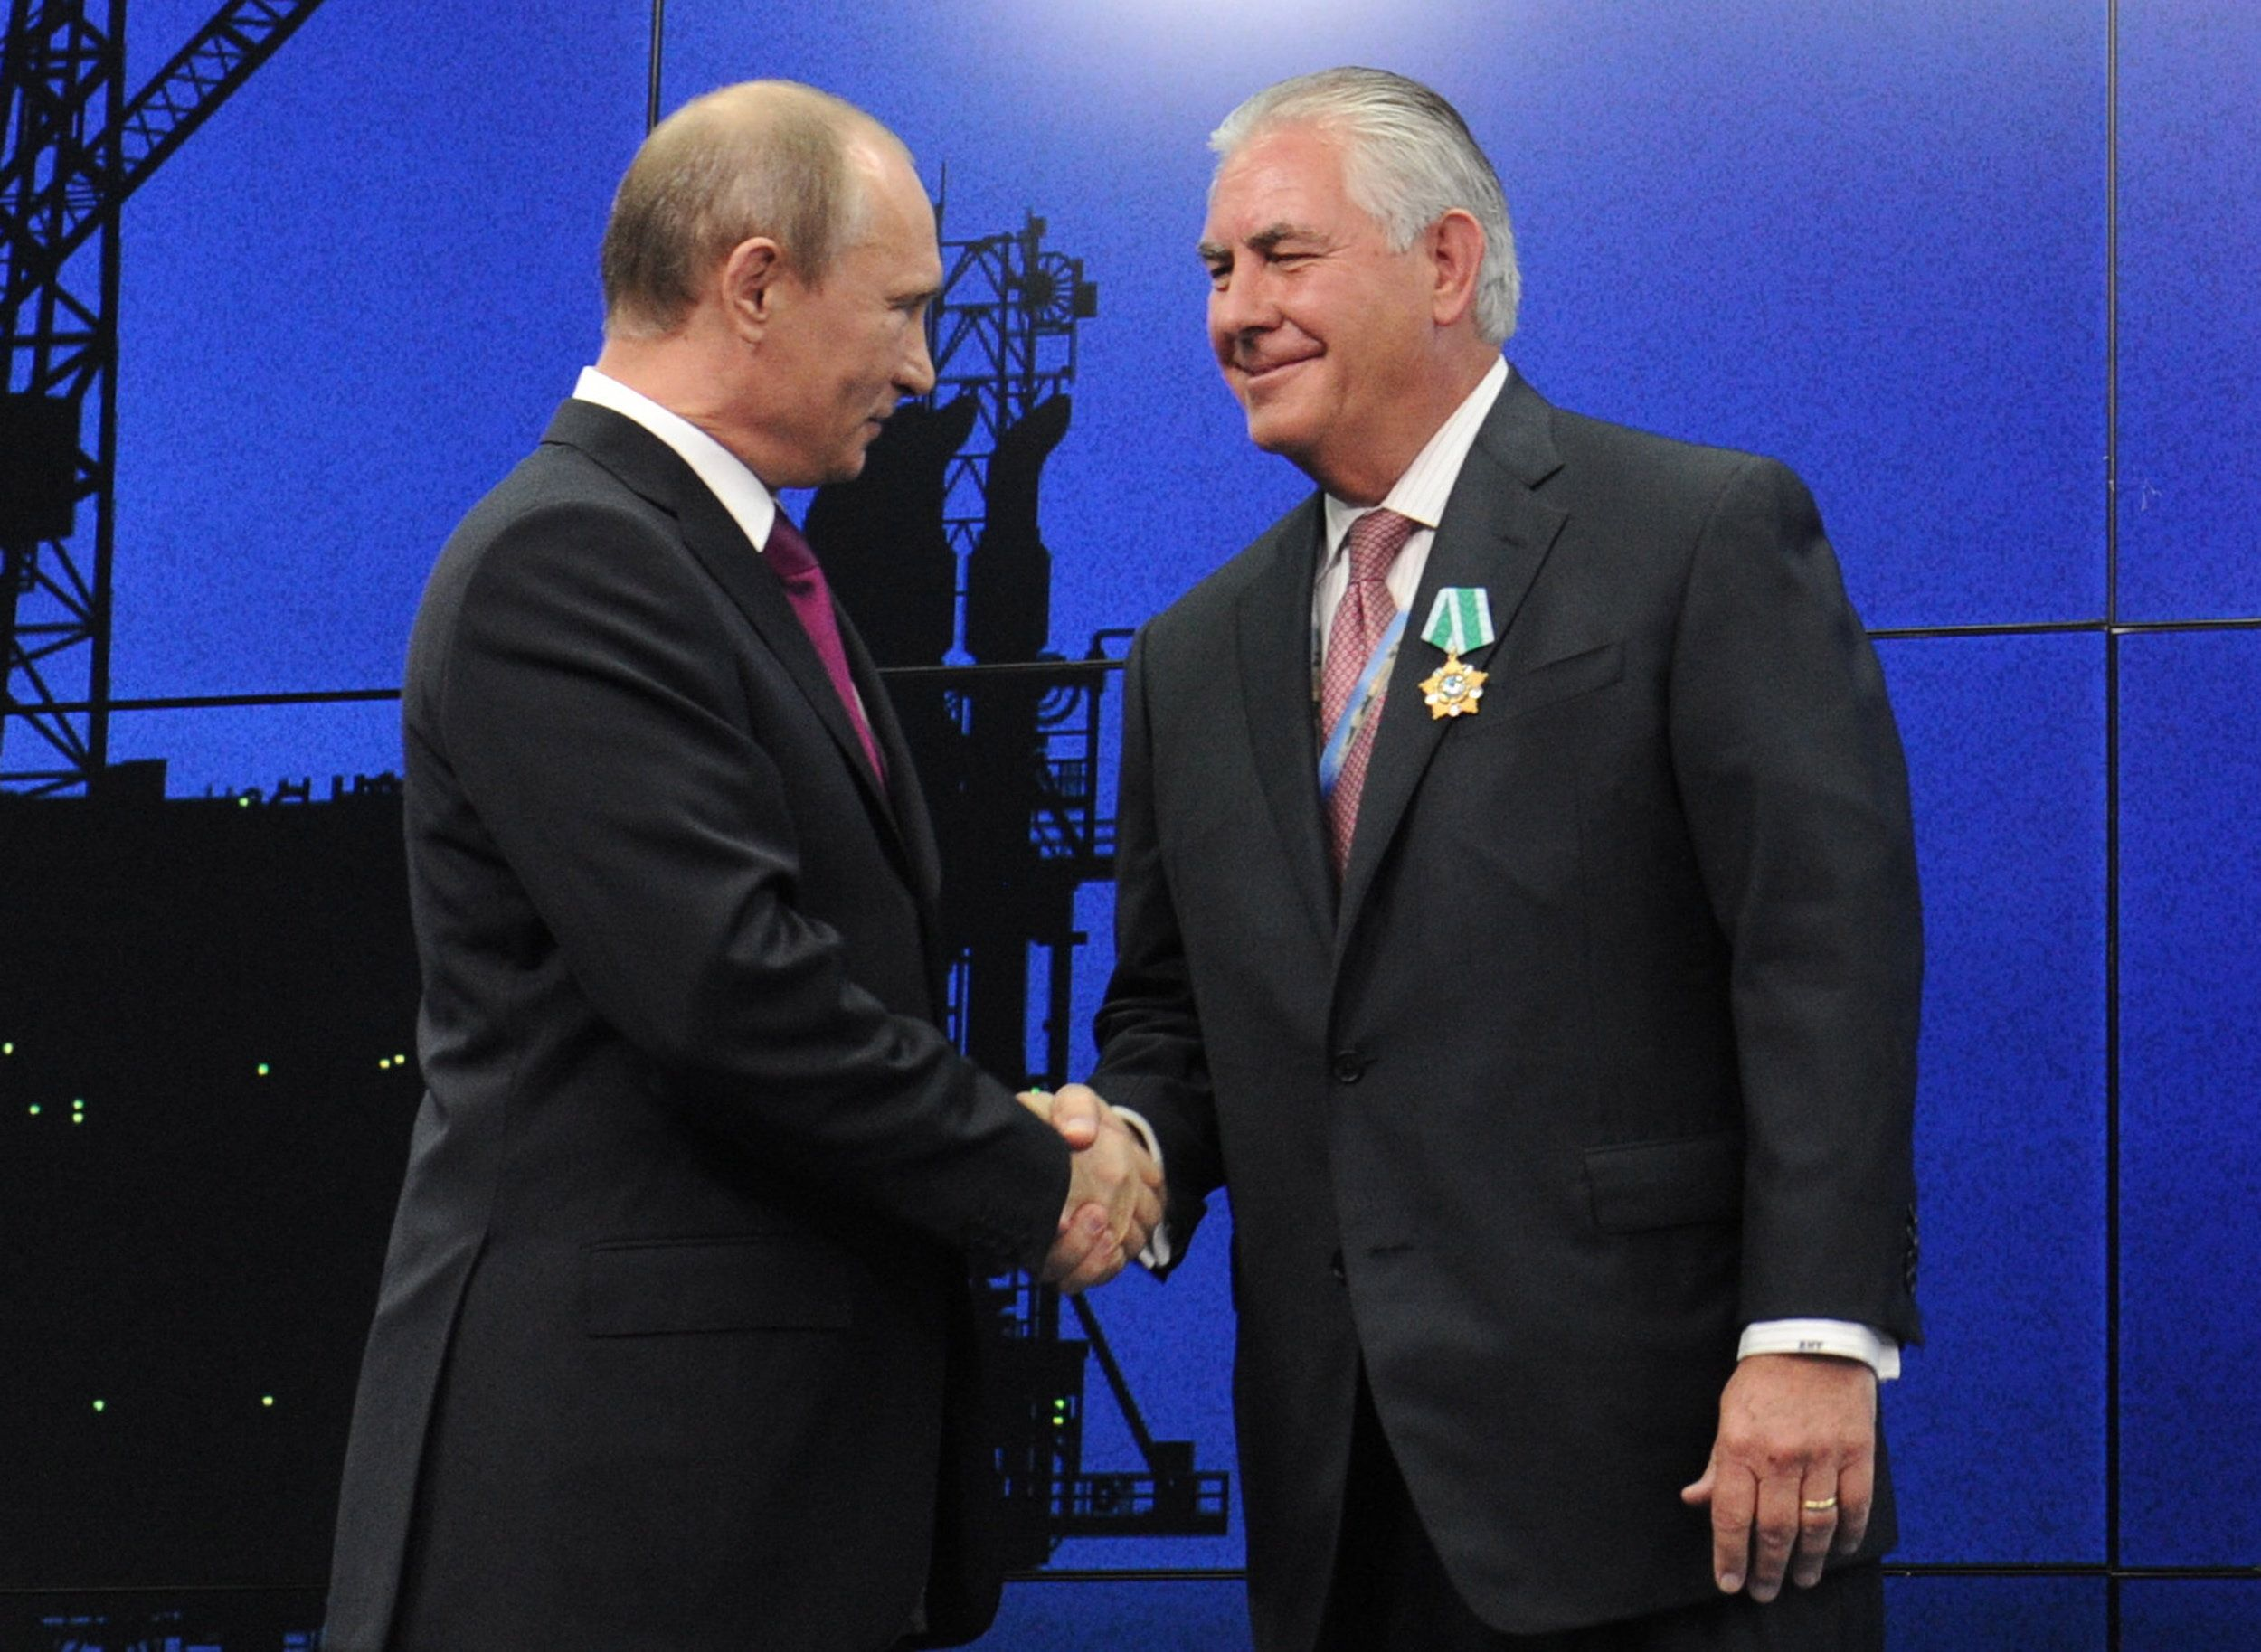 ST PETERSBURG, RUSSIA. Pictured in this file image dated June 21, 2013, are Russia's president Vladimir Putin and Exxon Mobil chairman Rex Tillerson (L-R) at an award ceremony for employees and chief executives of energy companies at the 17th St Petersburg International Economic Forum (SPIEF) at Lenexpo. Mikhail Klimentyev/Russian Presidential Press and Information Office/TASS (Photo by Mikhail Klimentyev\TASS via Getty Images)